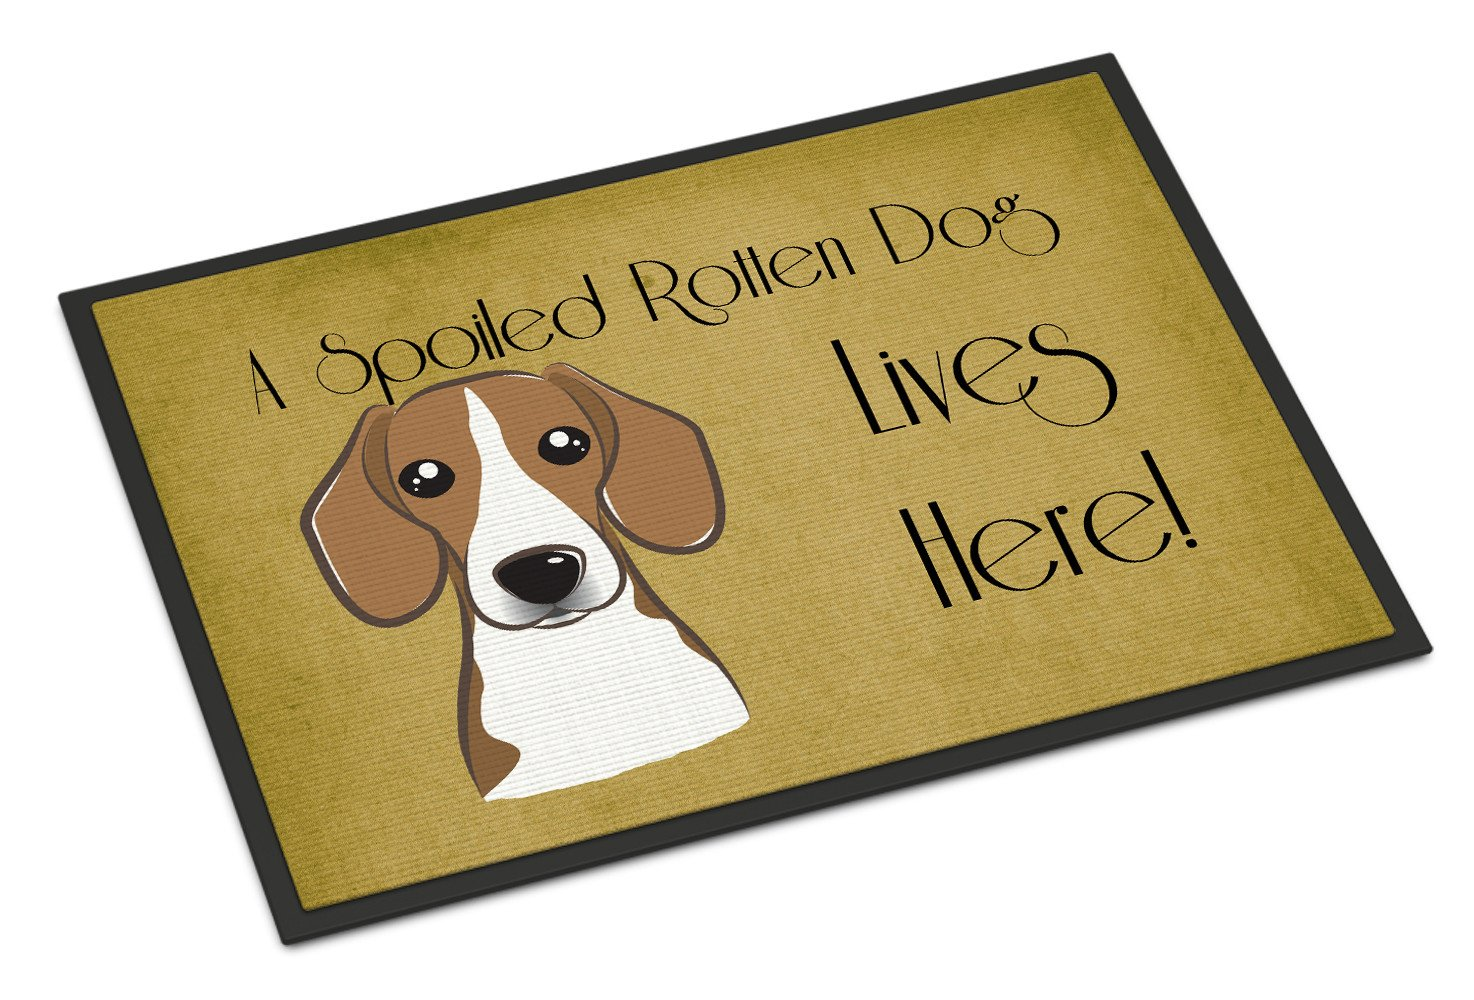 Beagle Spoiled Dog Lives Here Indoor or Outdoor Mat 18x27 BB1487MAT - the-store.com